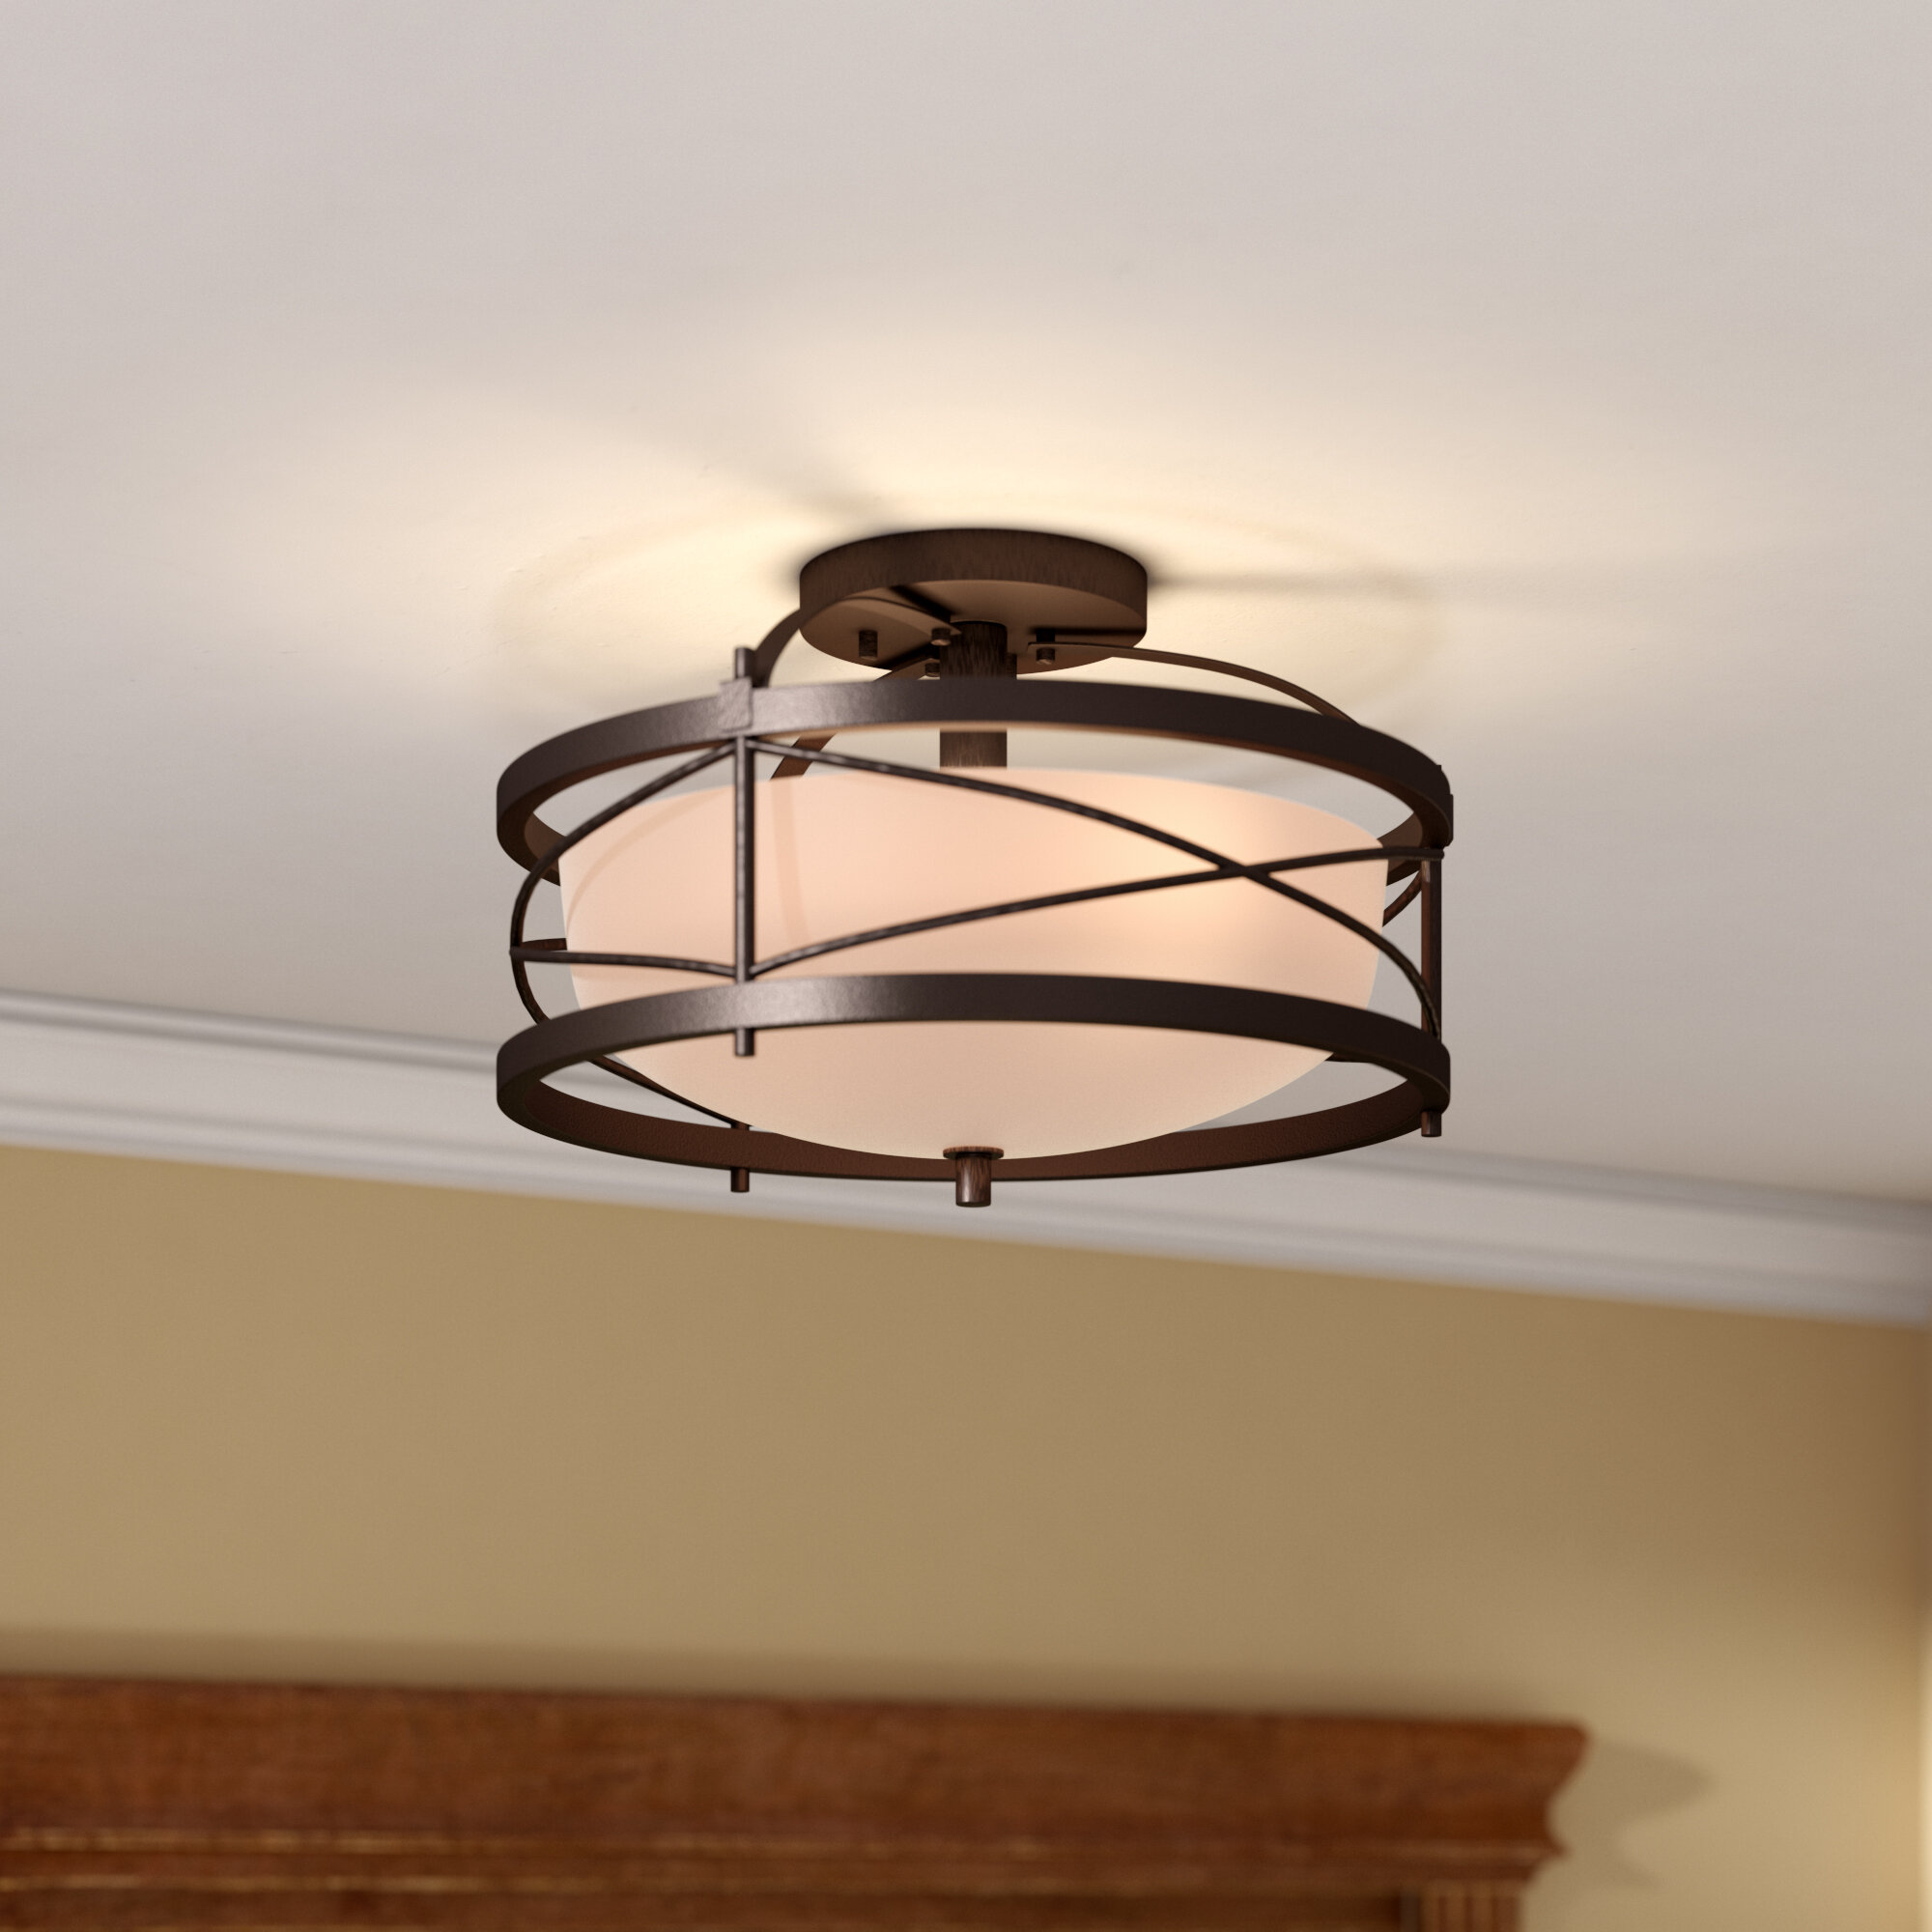 Flush mount lighting youll love wayfair save aloadofball Choice Image